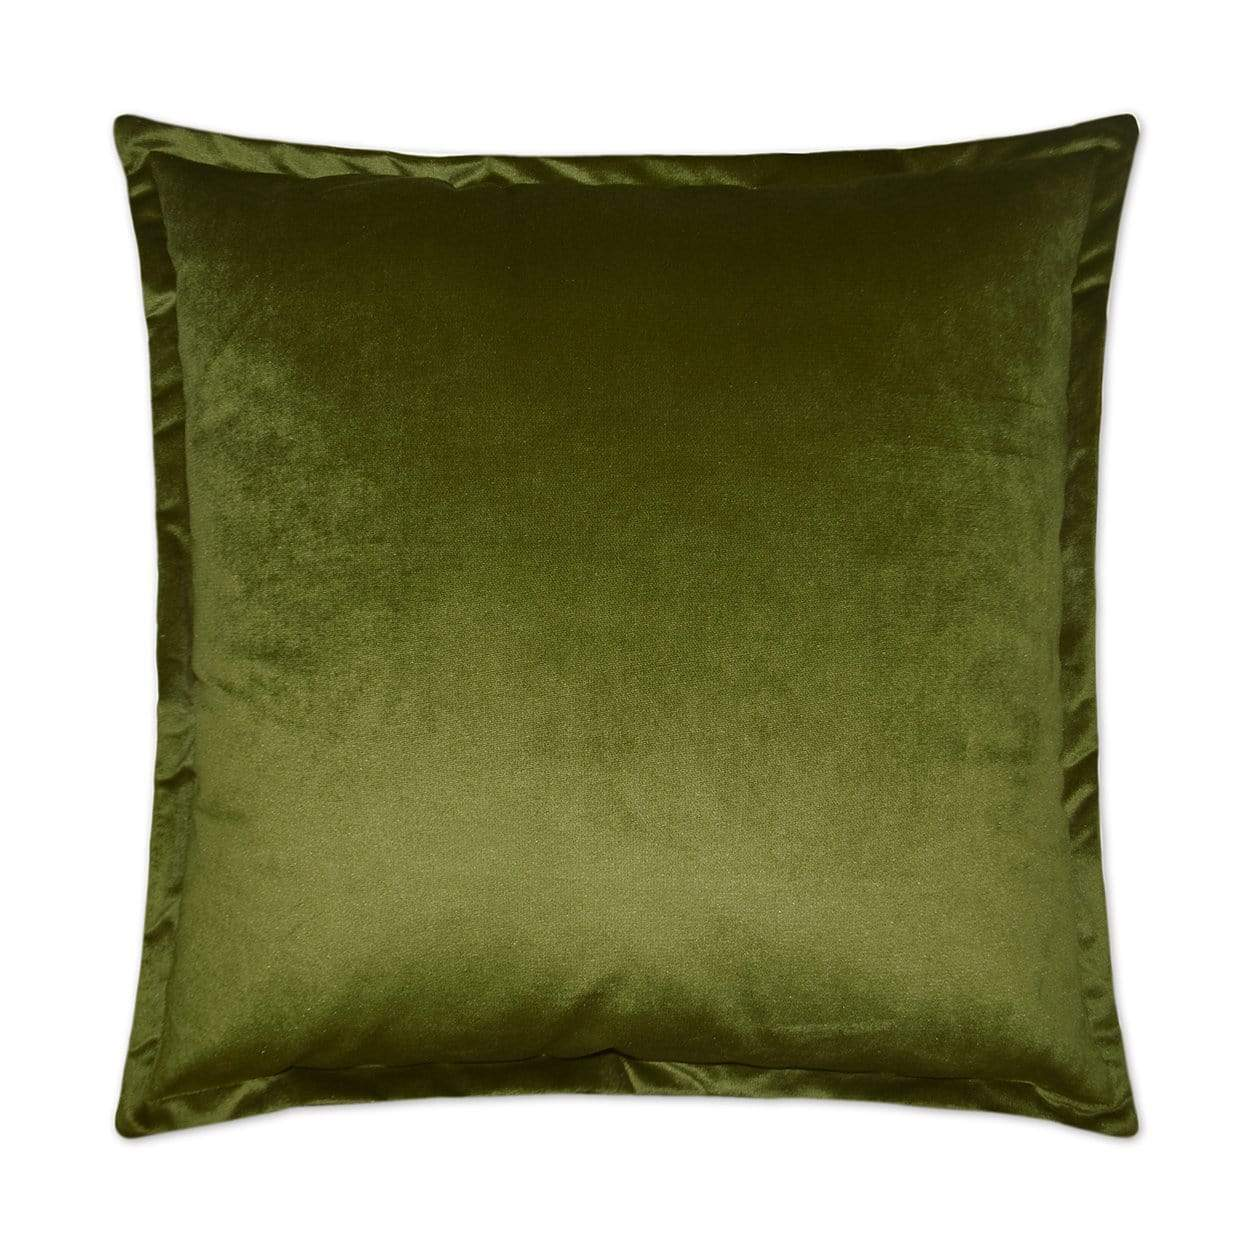 D.V. Kap D.V. Kap Belvedere Flange Pillow - Available in 27 Colors Aloe 2692-A